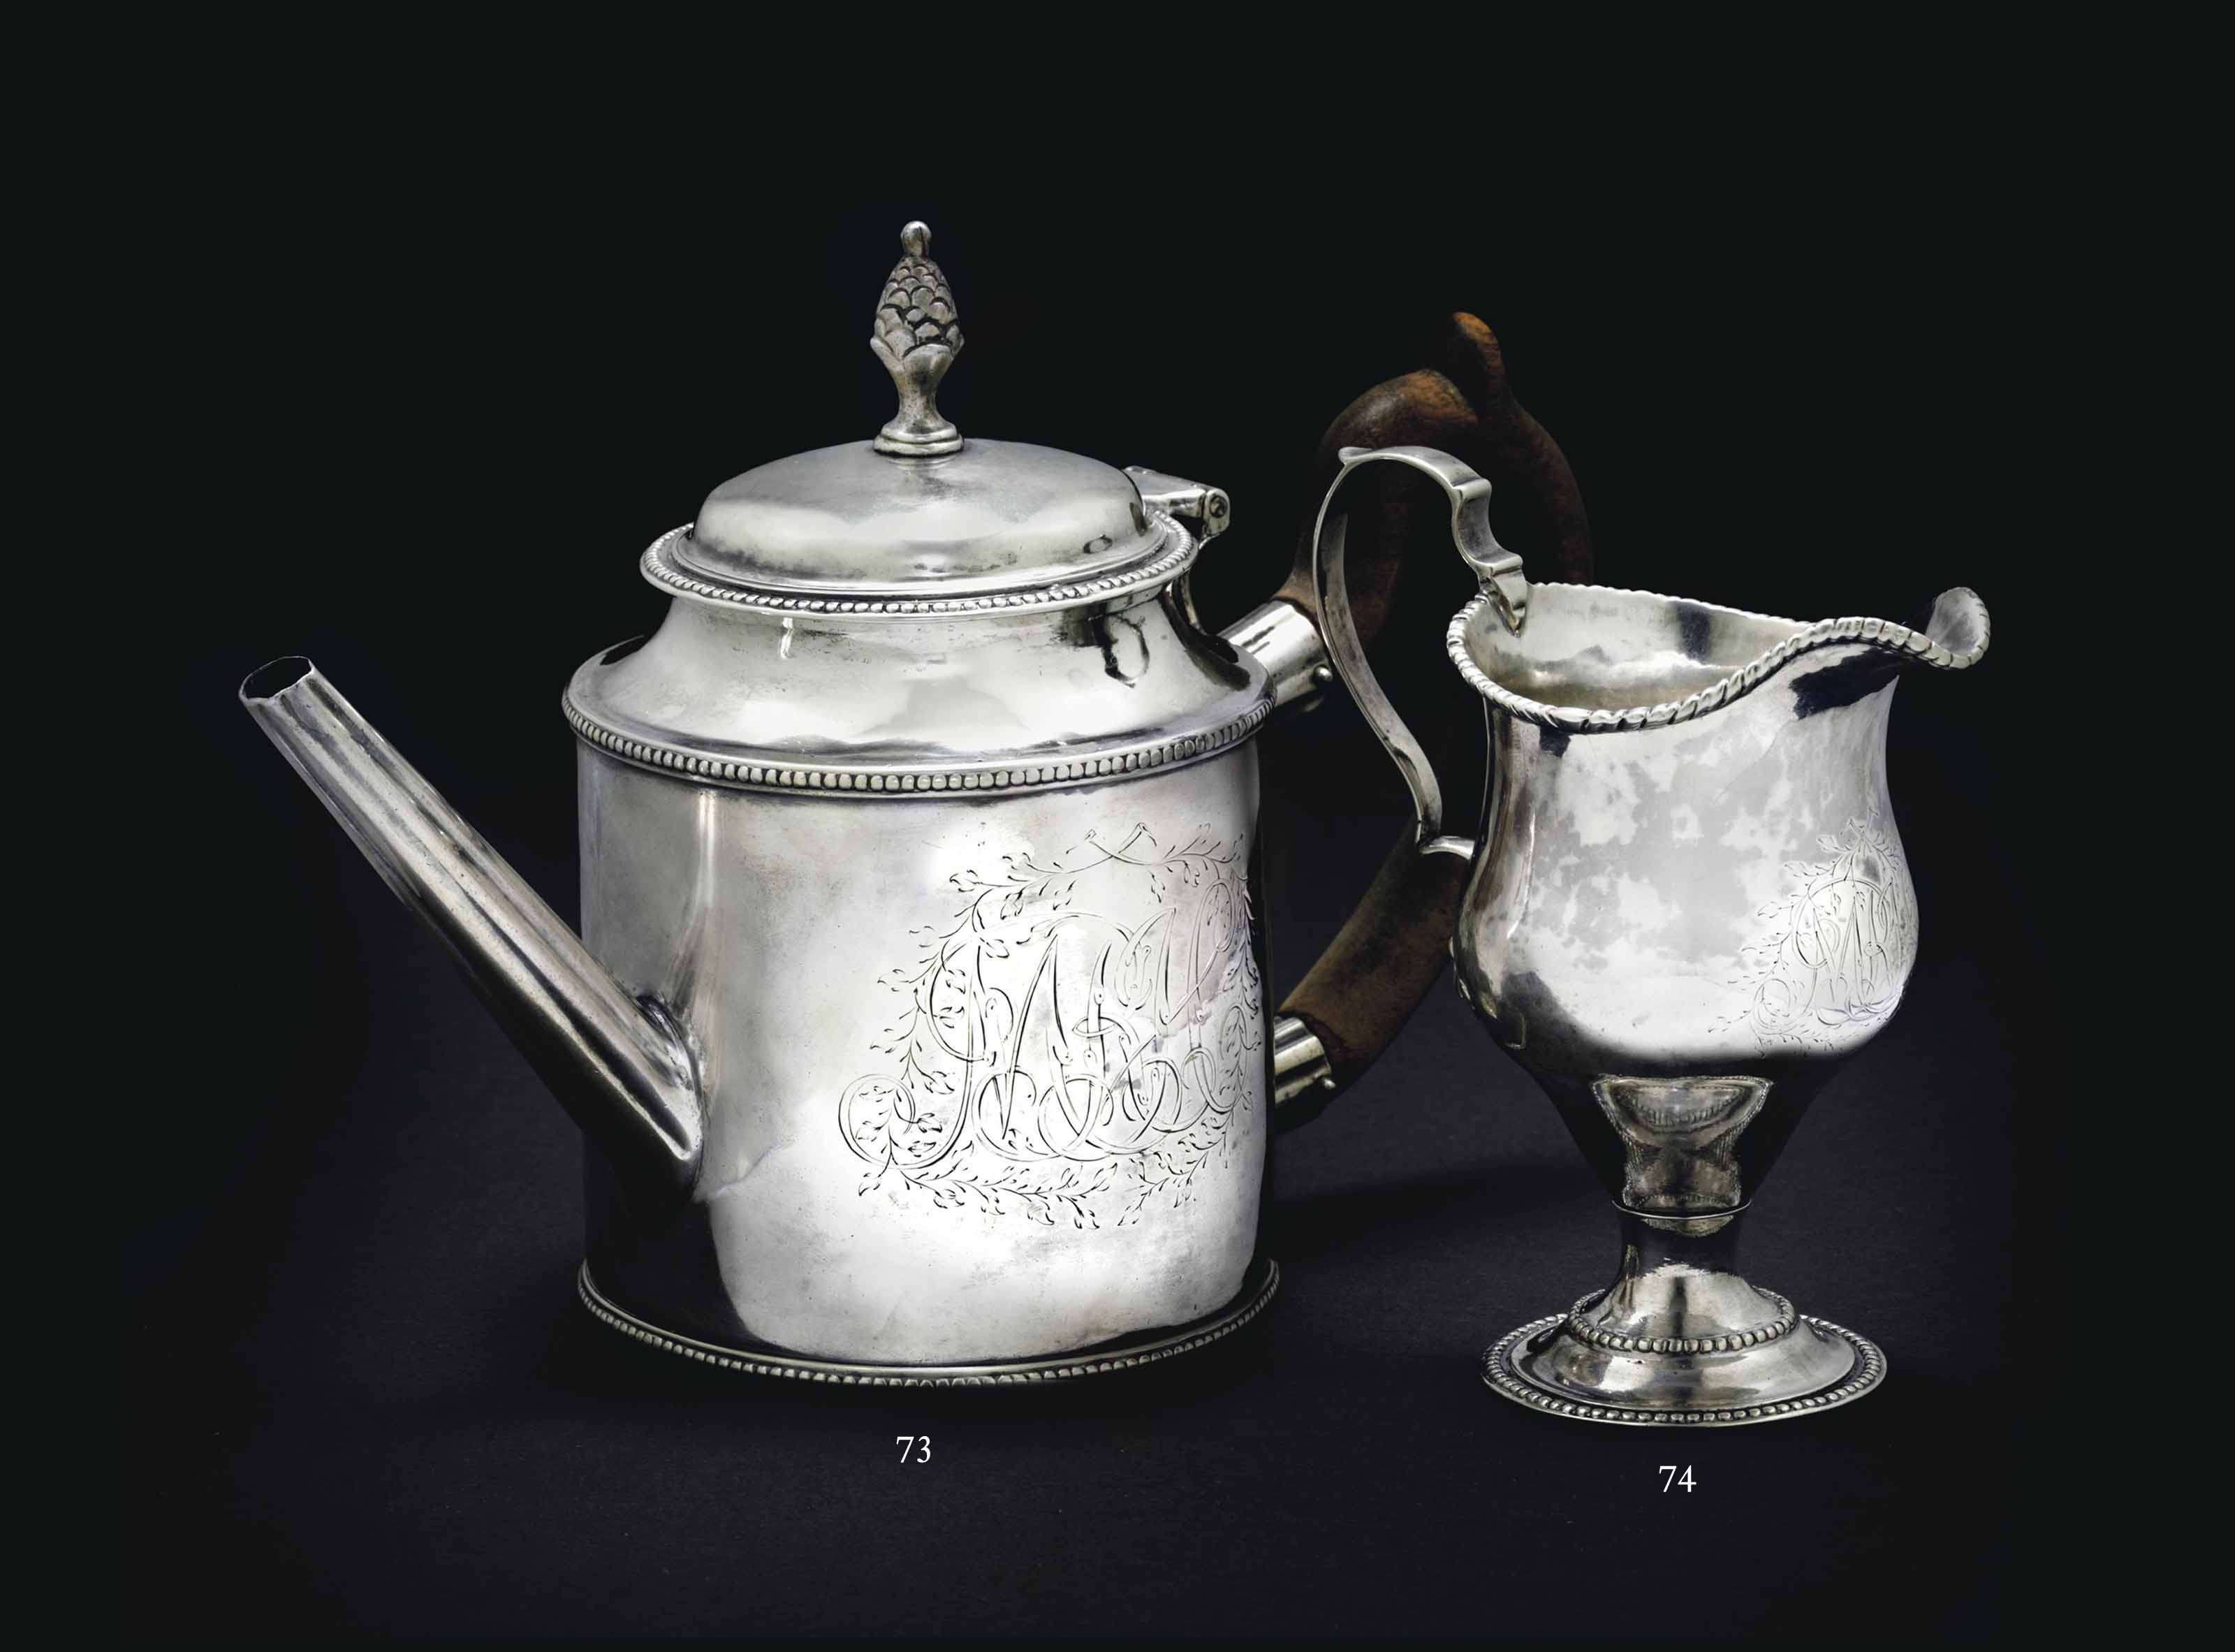 AN IMPORTANT SILVER TEAPOT MADE FOR MOSES MICHAEL HAYS